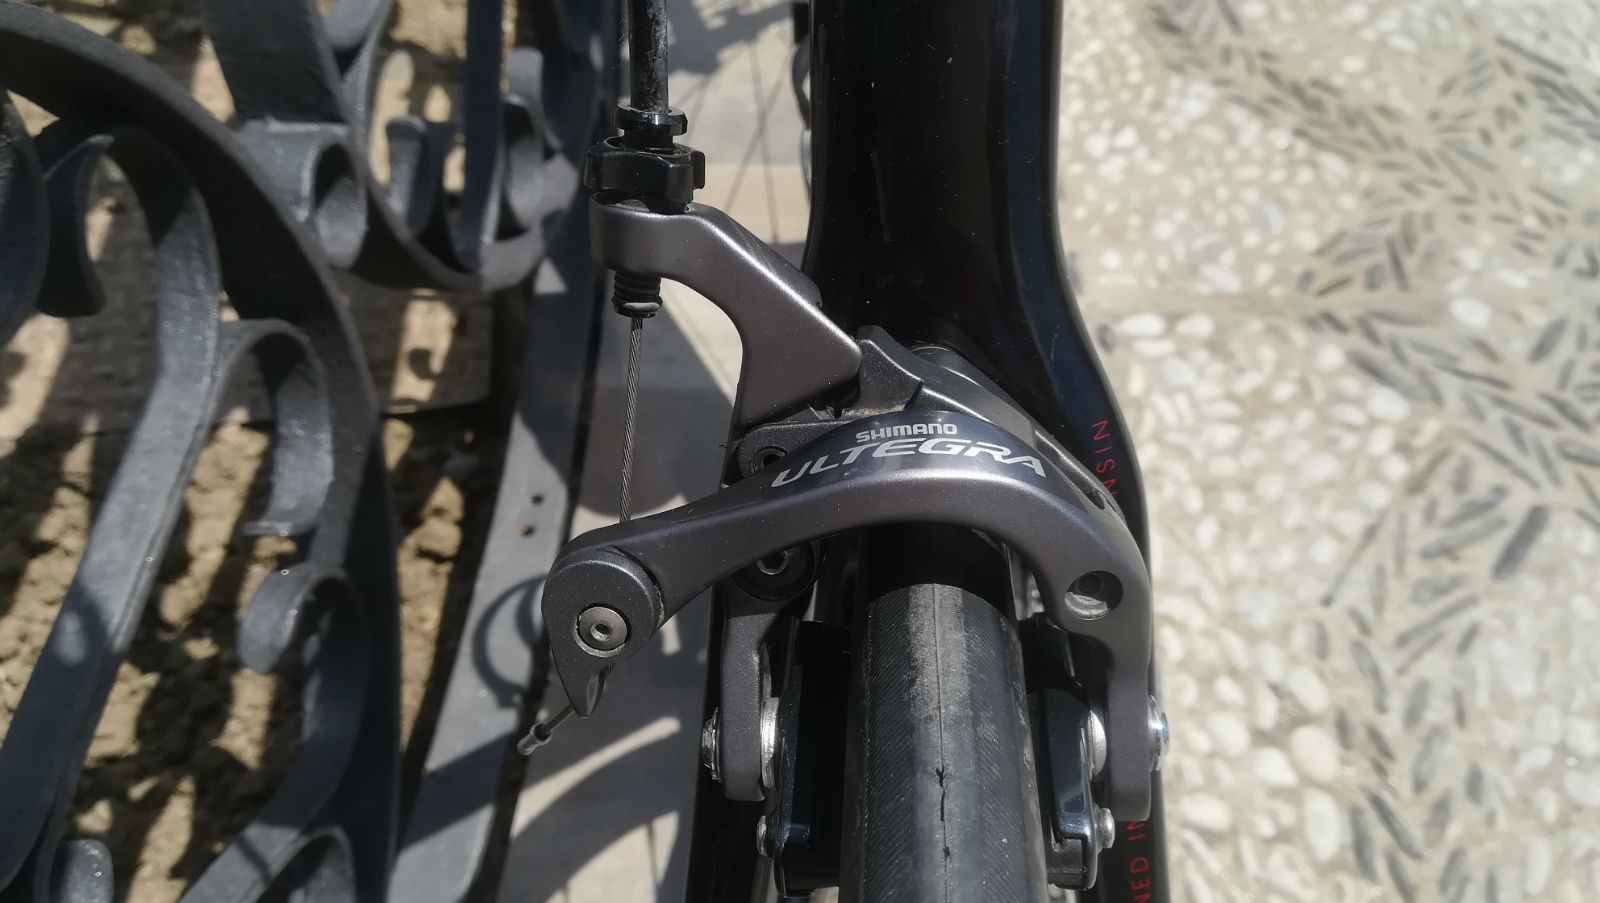 emonda s6_cyclingcountry (2)